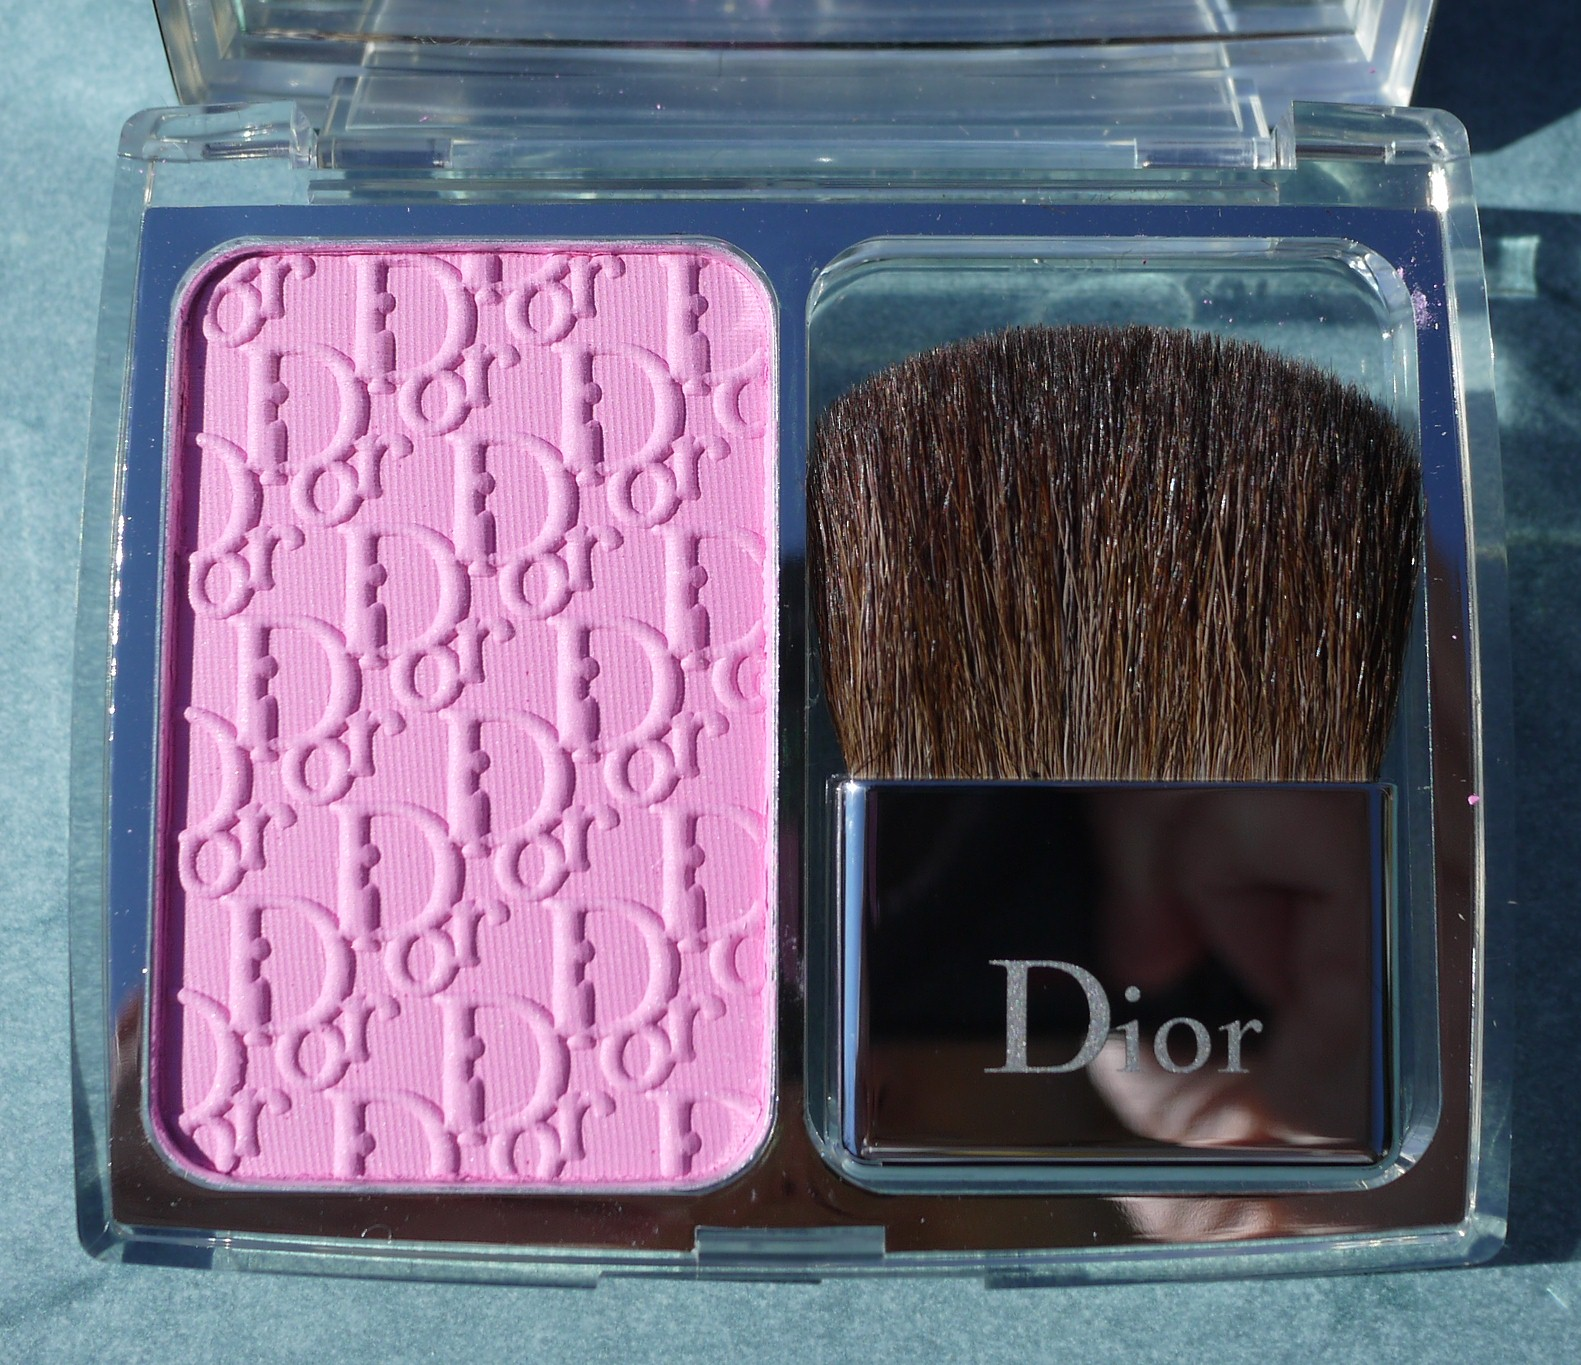 The Finely Milled Light Pink Powder Is Said To Adjust Skin S Chemistry Create A Customized Look Of Naturally Flushed Rosy Cheeks